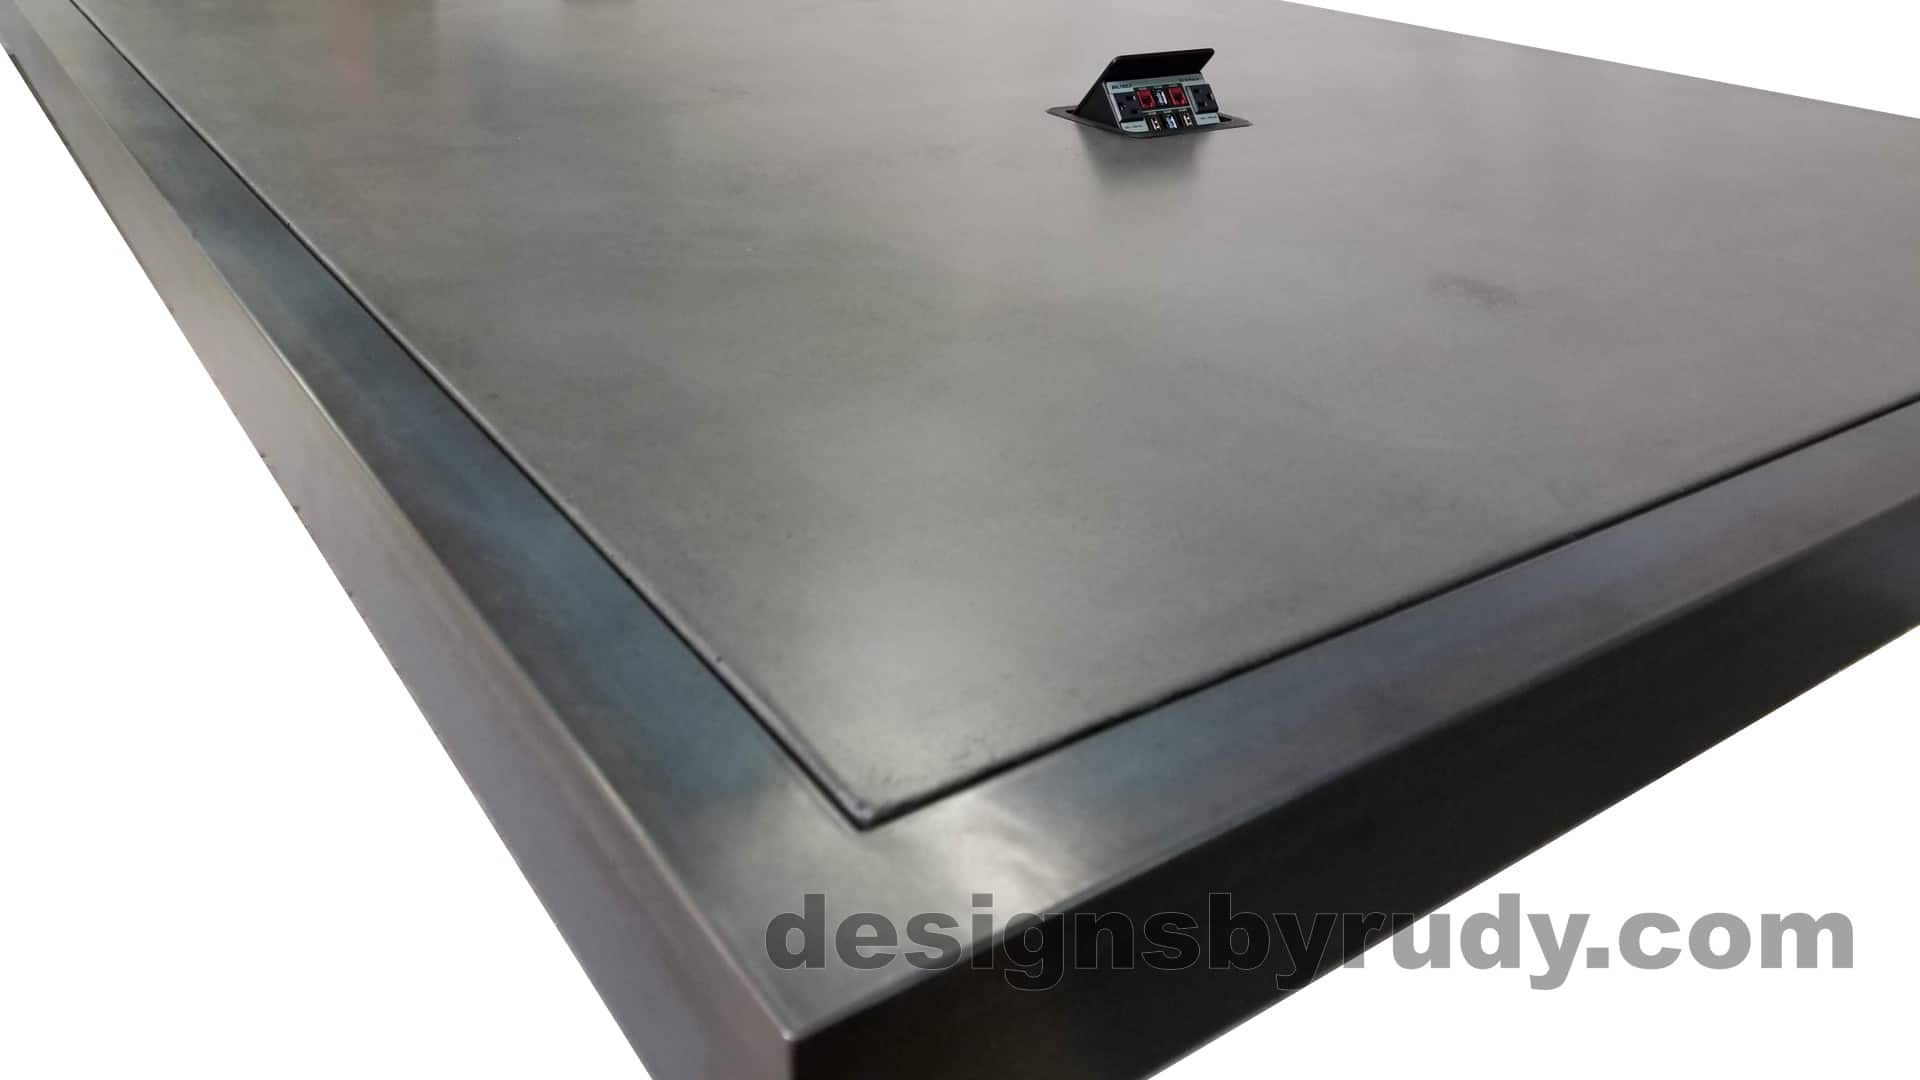 12 Steel and concrete conference table, design and fabrication by Designs by Rudy, low angle steel and concrete corner view